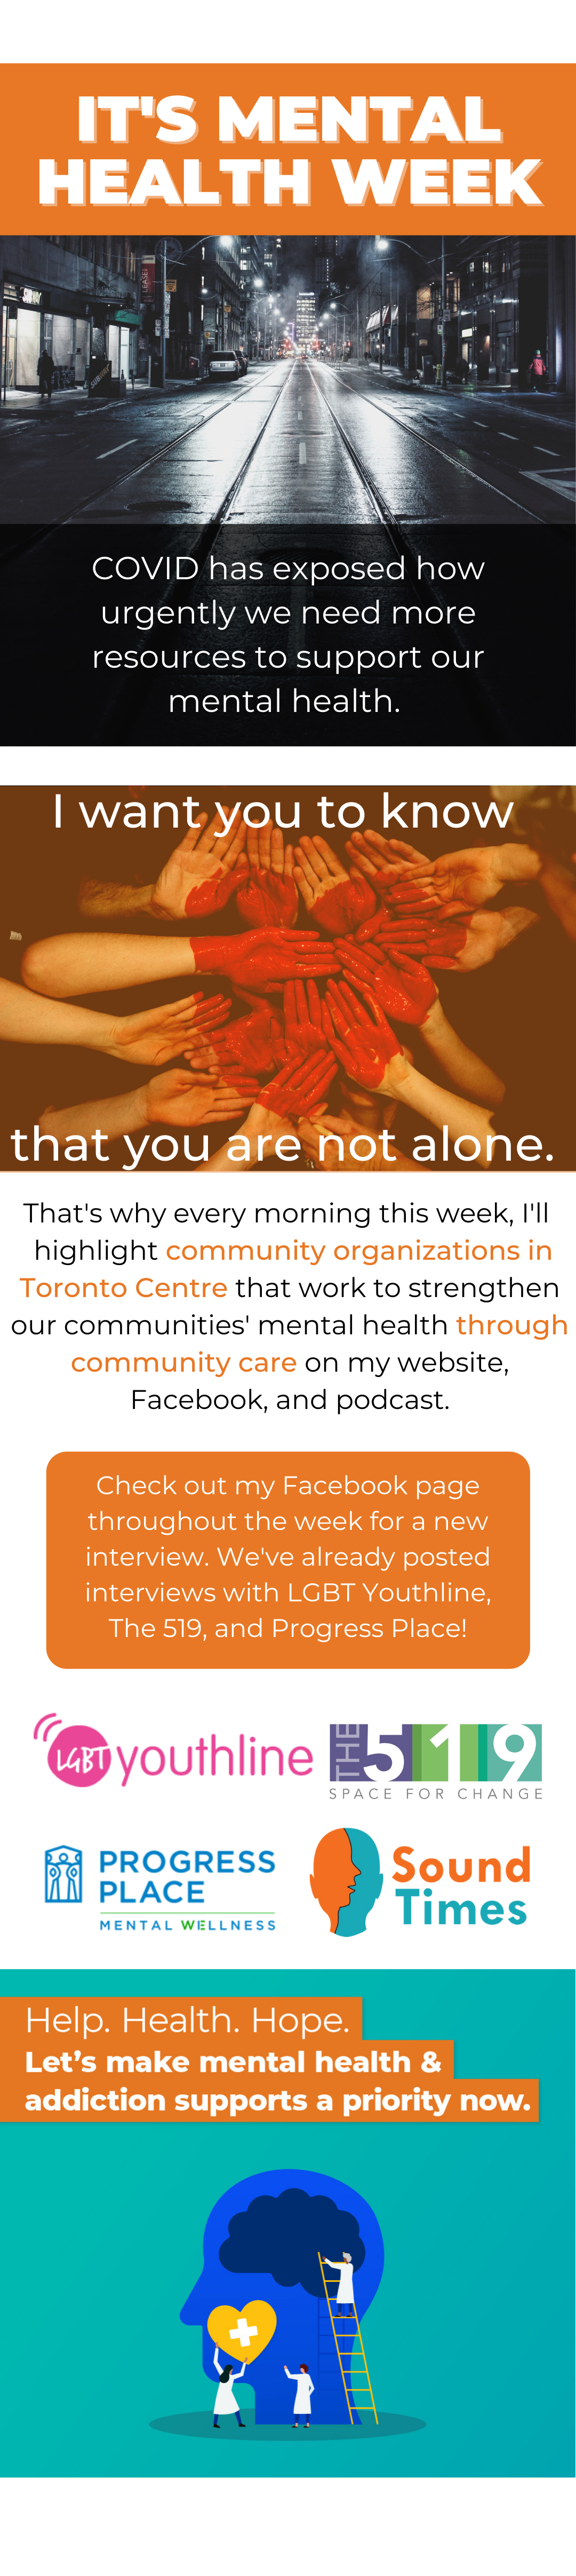 It's Mental HEalth Week. COVID has exposed how urgently we need more resources to support our mental health.  I want you to know      that you are not alone. That's why every morning this week, I'll  highlight community organizations in Toronto Centre that work to strengthen our communities' mental health through community care on my website, Facebook, and podcast.Check out my Facebook page throughout the week for a new interview. We've already posted interviews with LGBT Youthline, The 519, and Progress Place!